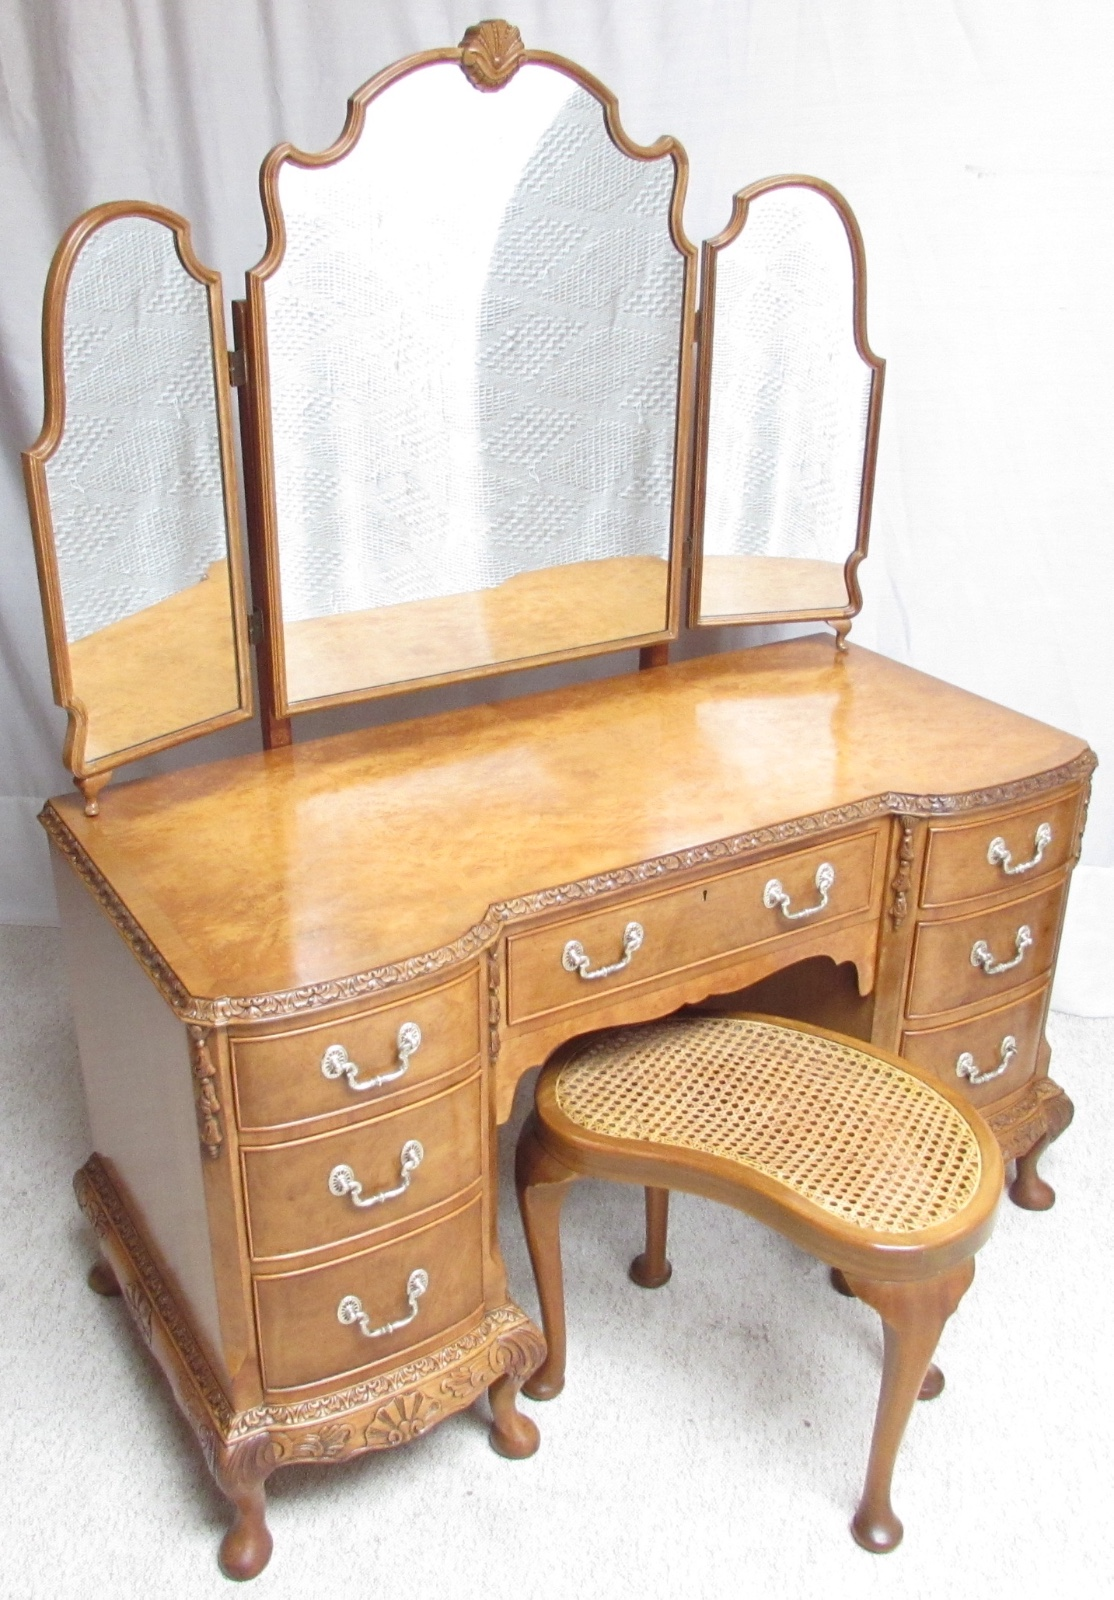 Sussex Antiques and Interiors image (1 of 3)